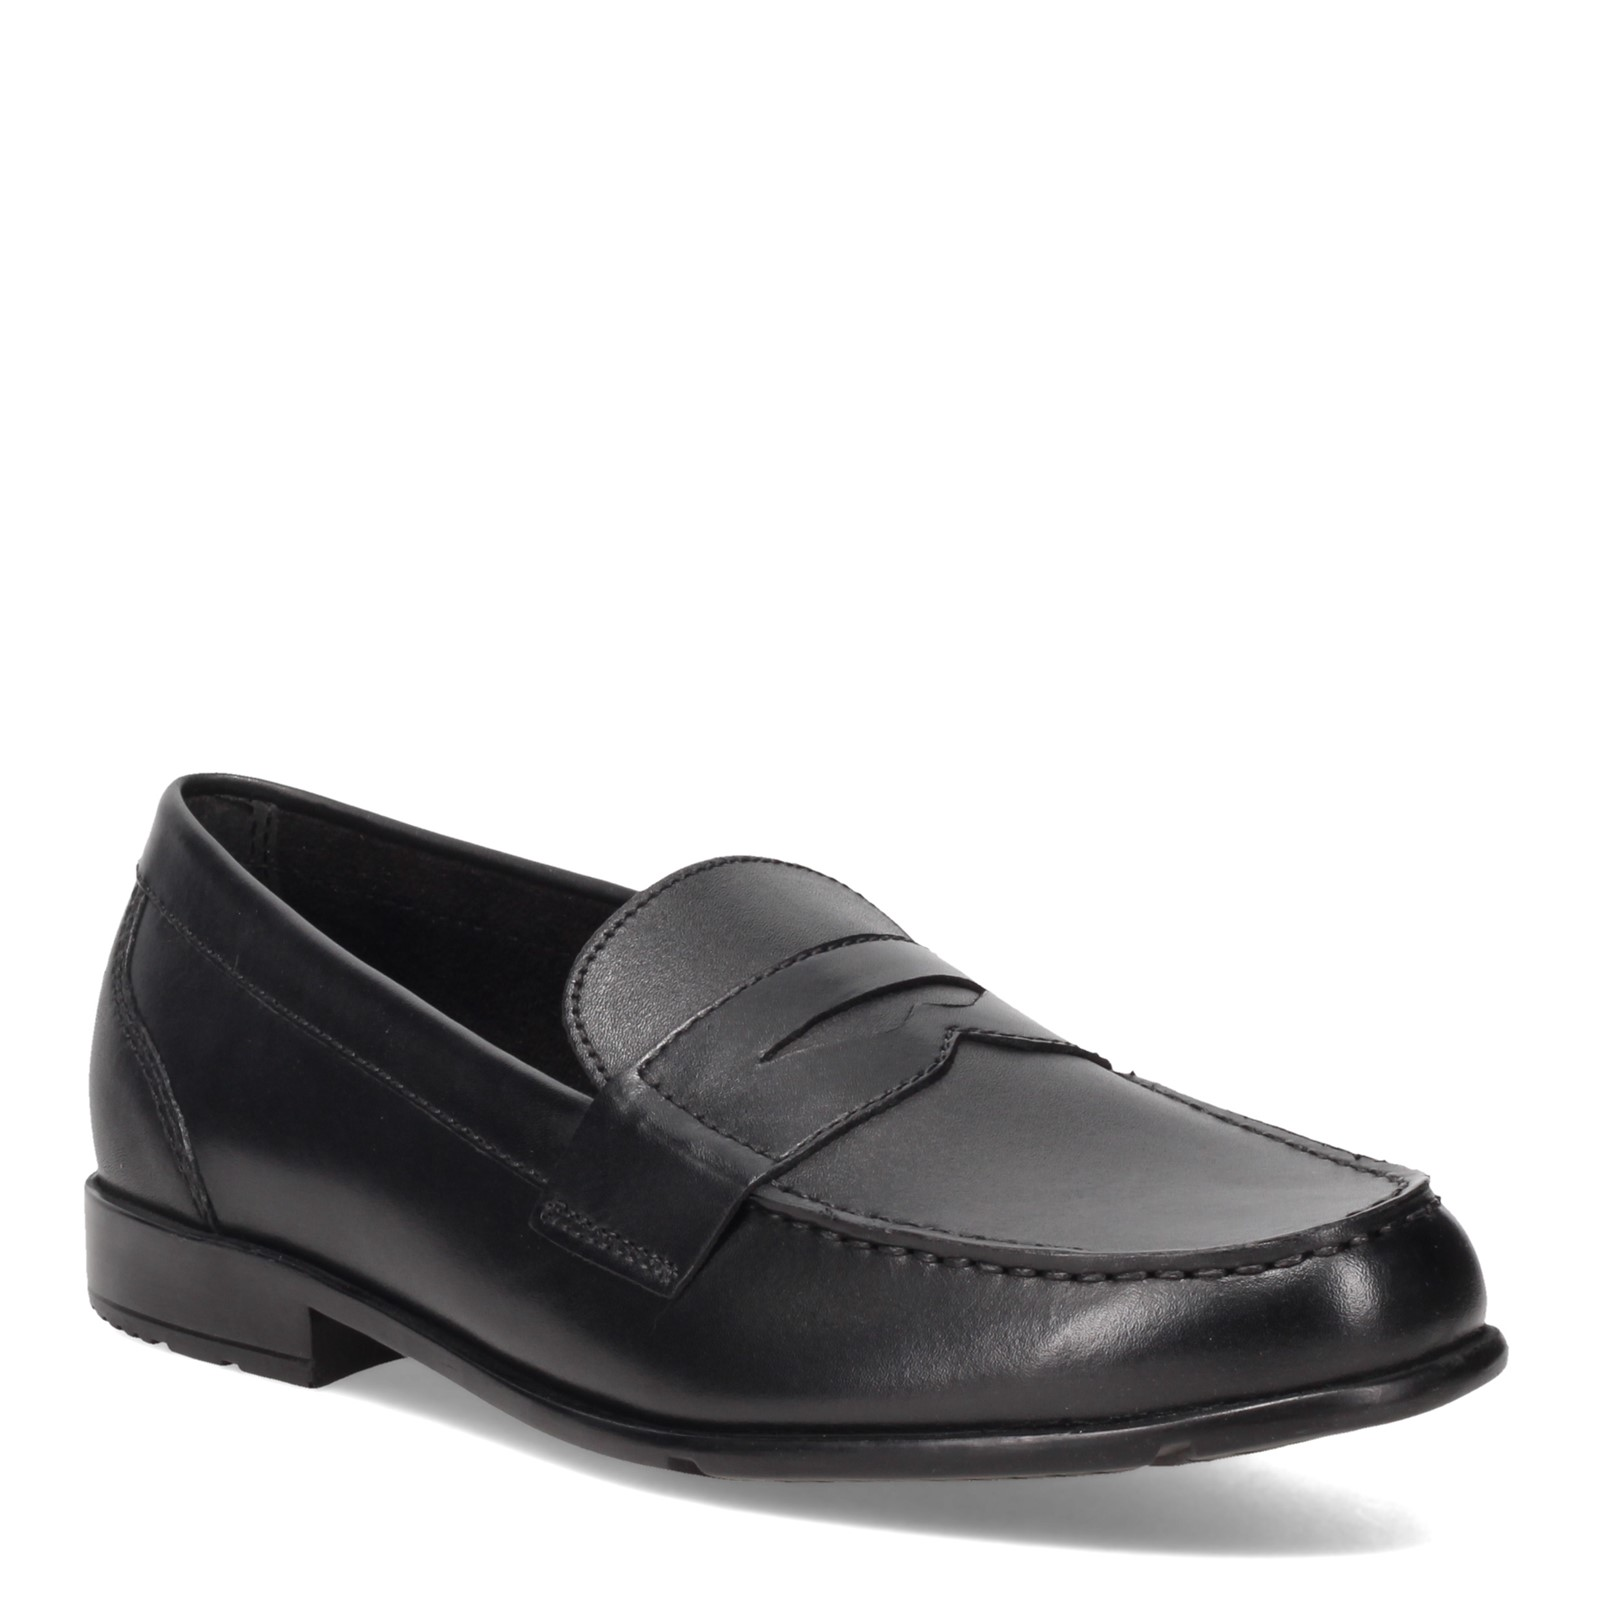 Men's Rockport, Classic Penny Loafer